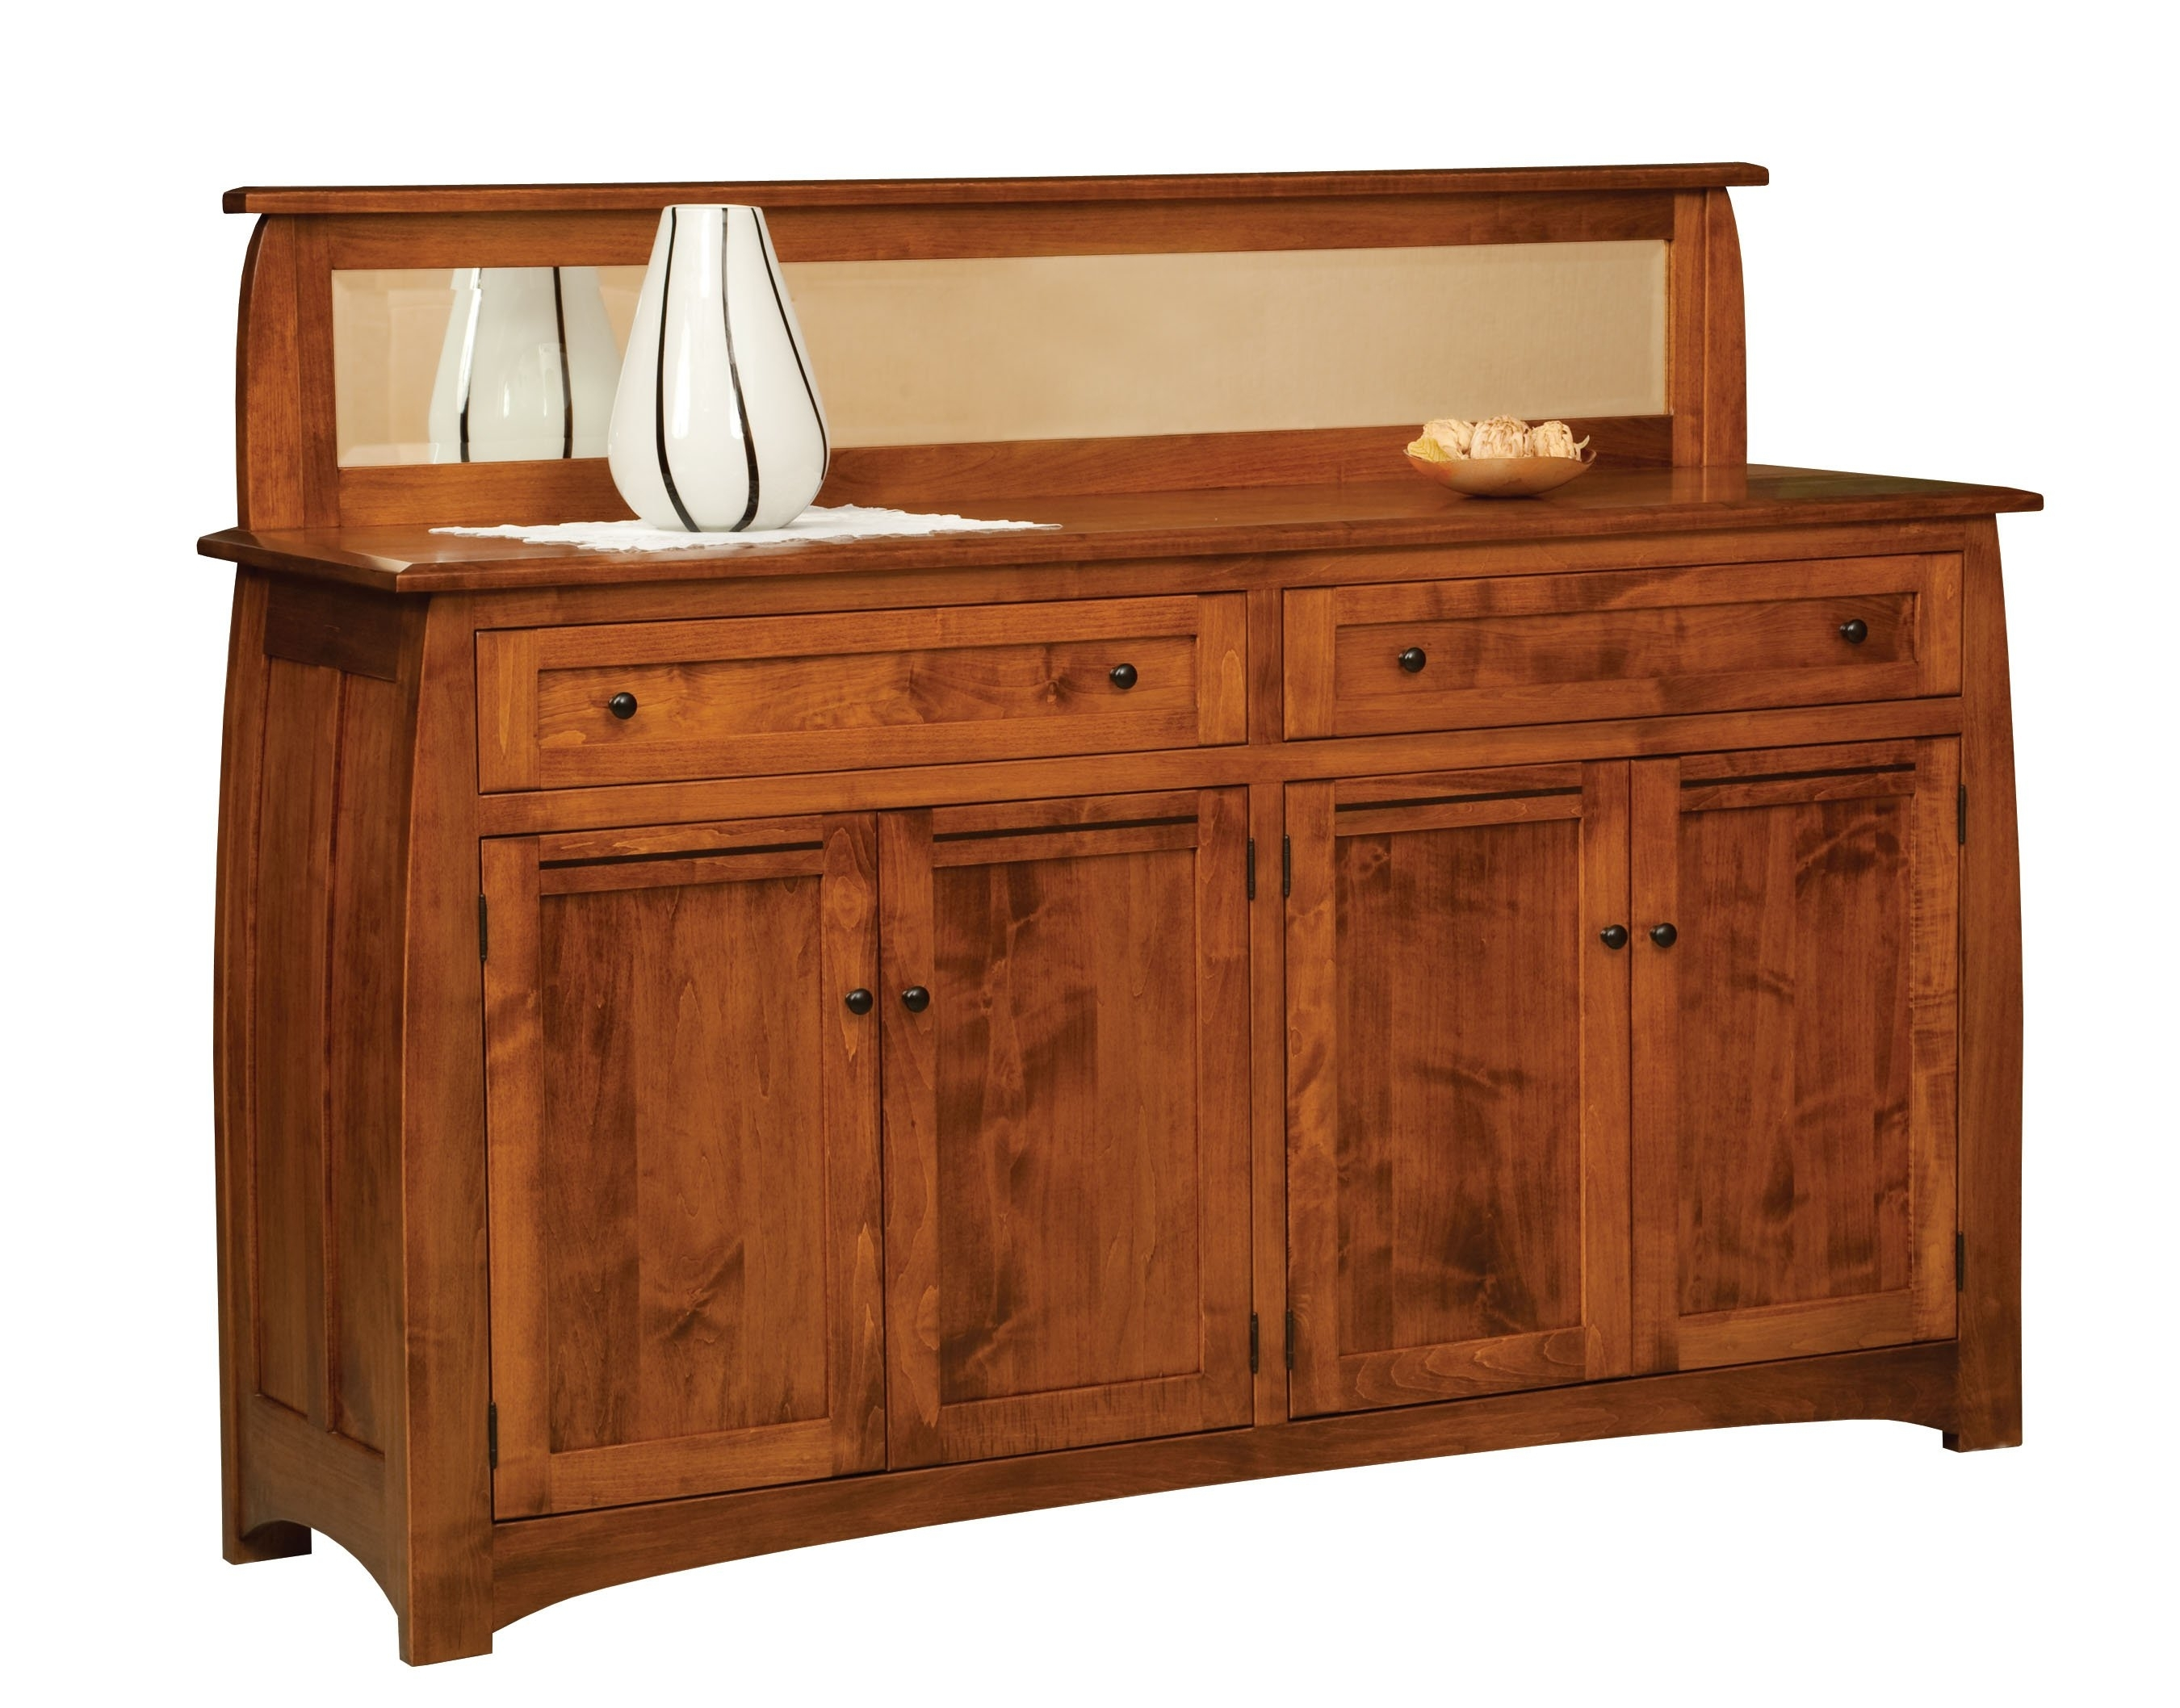 Buffets & Sideboards | Amish Crafted Furniture Within Newest Candice Ii Sideboards (View 7 of 20)